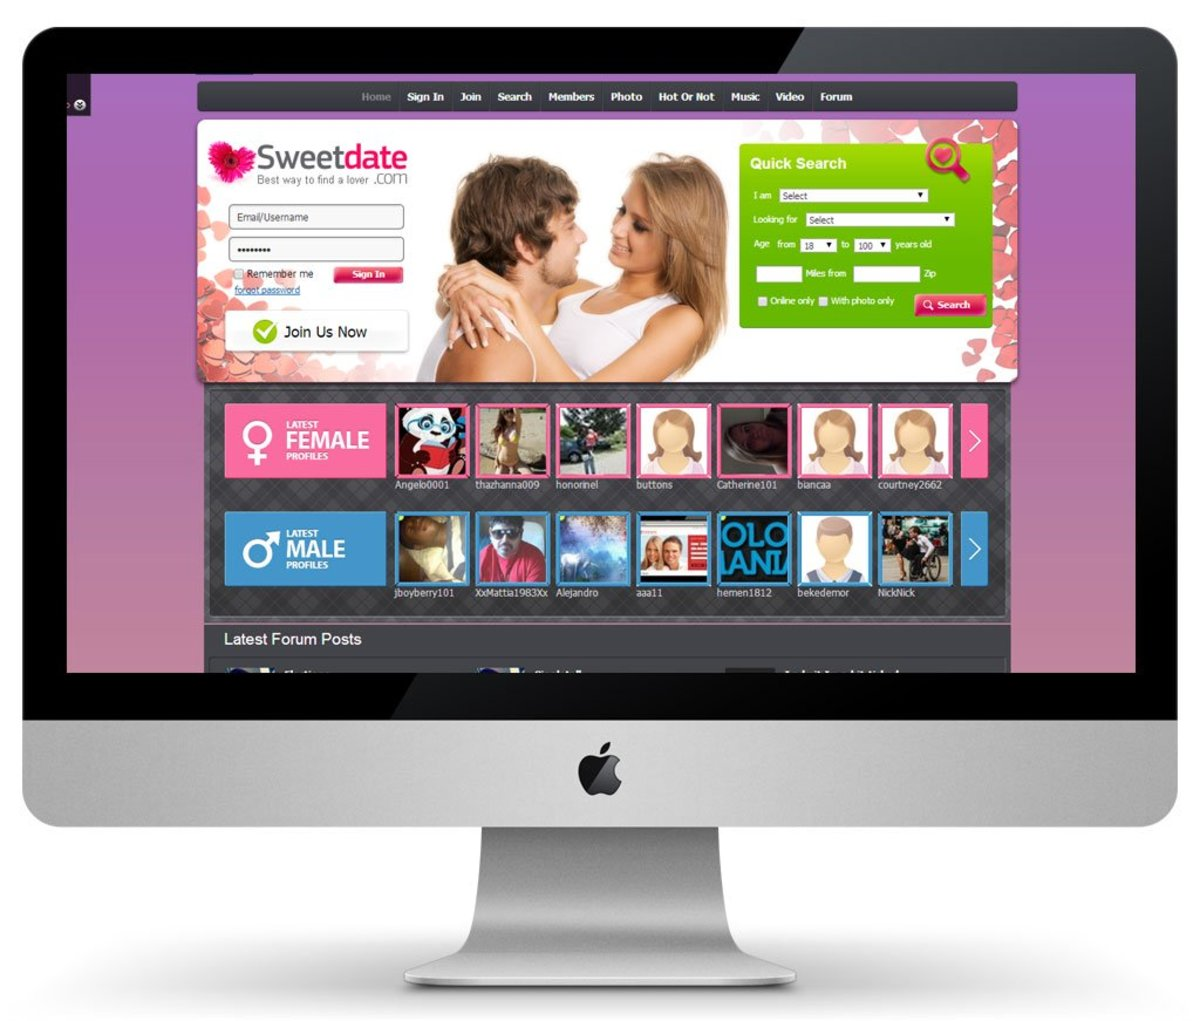 Find all the resources you need here to build your own online dating website business.